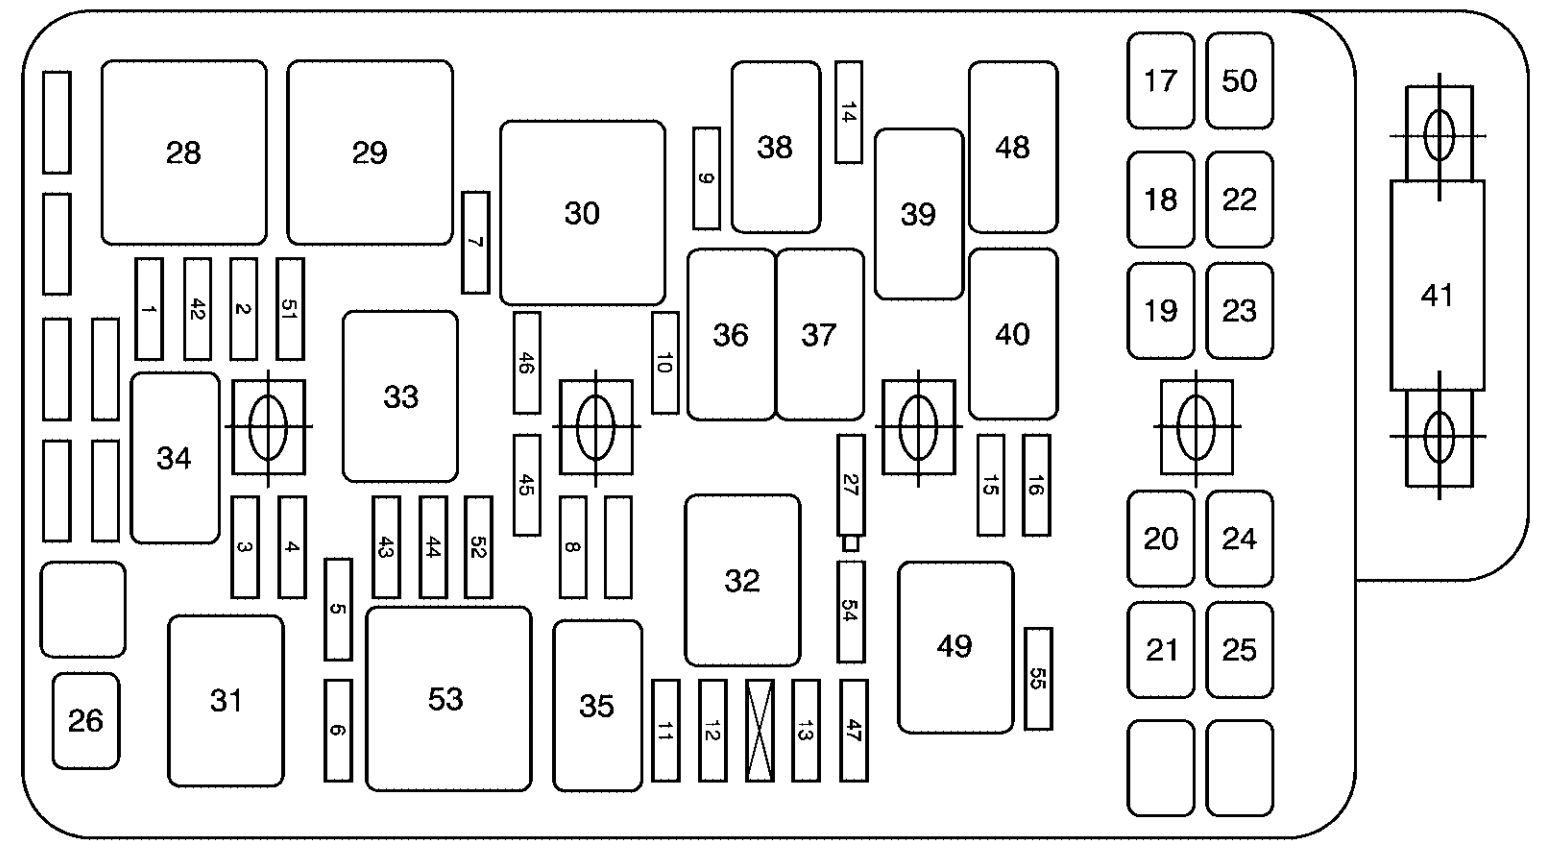 pontiac g6 fuse engine compartment g6 fuse box fuse diagram for 2006 pontiac grand am \u2022 wiring  at bakdesigns.co